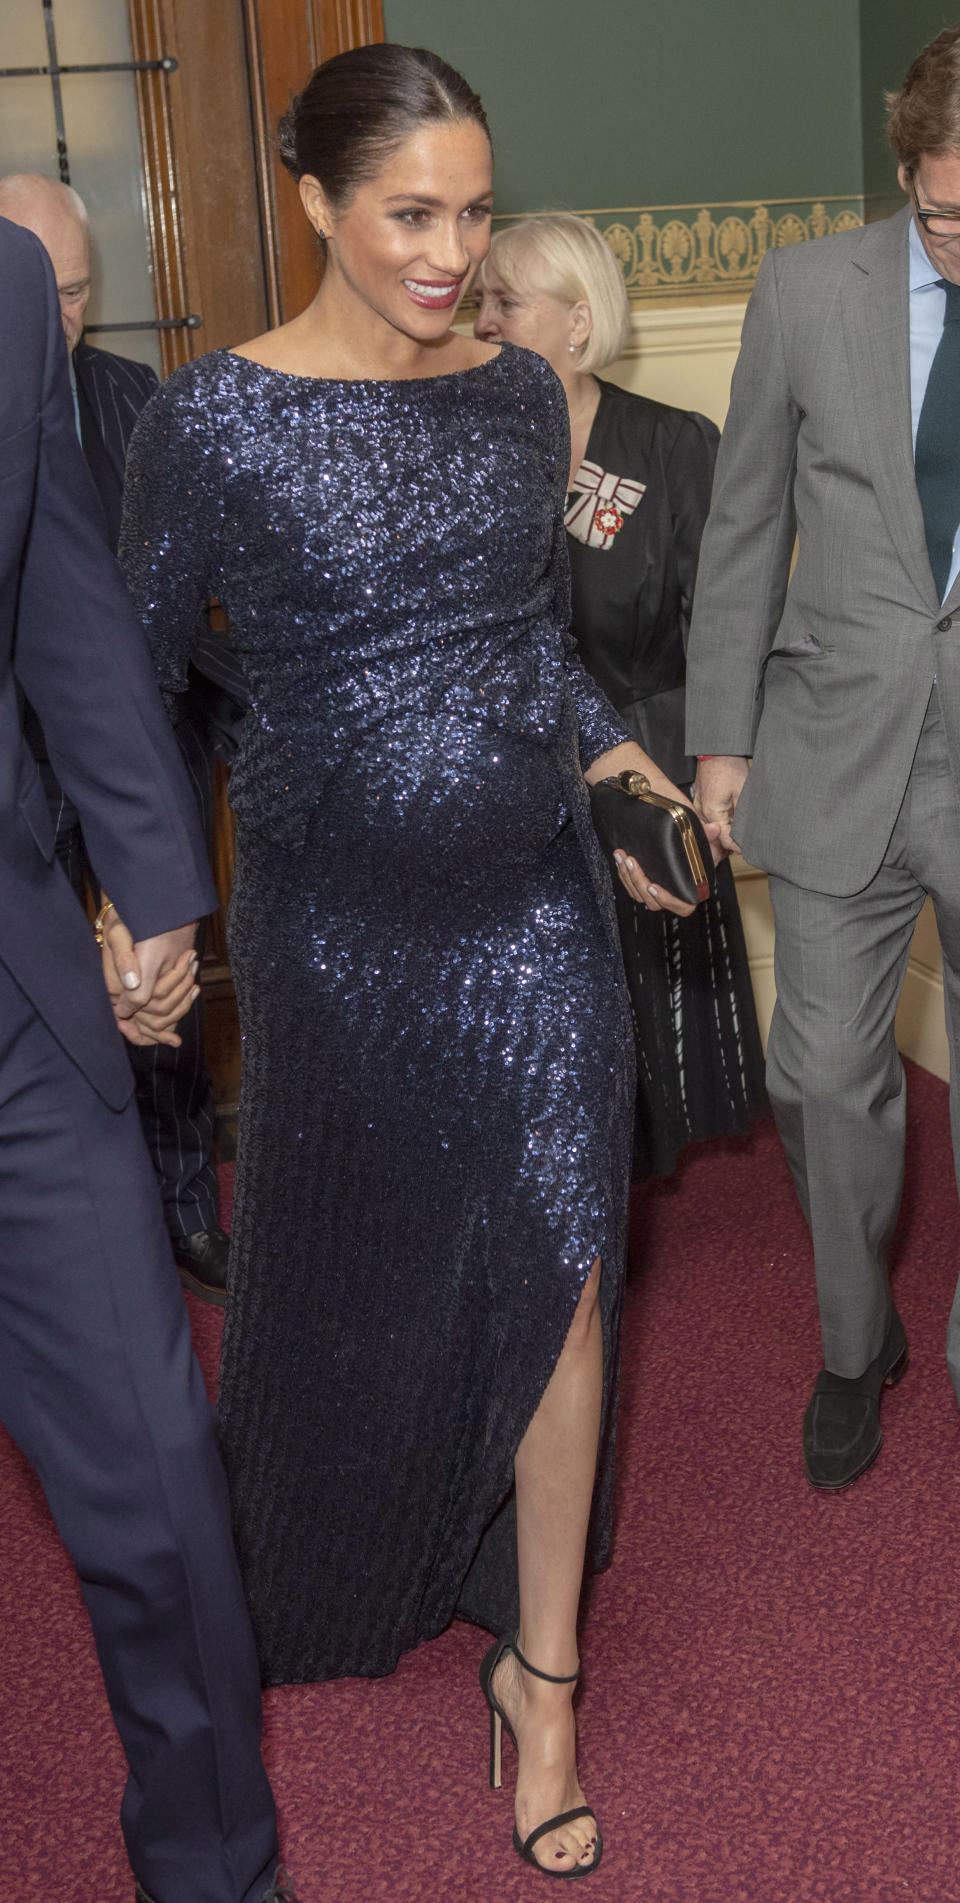 <p>After a quick outfit change, the Duchess of Sussex dazzled at the premiere of the Cirque du Soleil's 'Totem' at the Royal Albert Hall. For the evening, the mother-to-be dressed her bump in a £3,475 midnight blue Roland Mouret gown finished with Stuart Weitzman's £450 black 'Nudist' sandals. Her go-to Givenchy satin clutch bag and Princess Diana's Heirloom bracelet completed the ensemble. <em>[Photo: Getty]</em> </p>